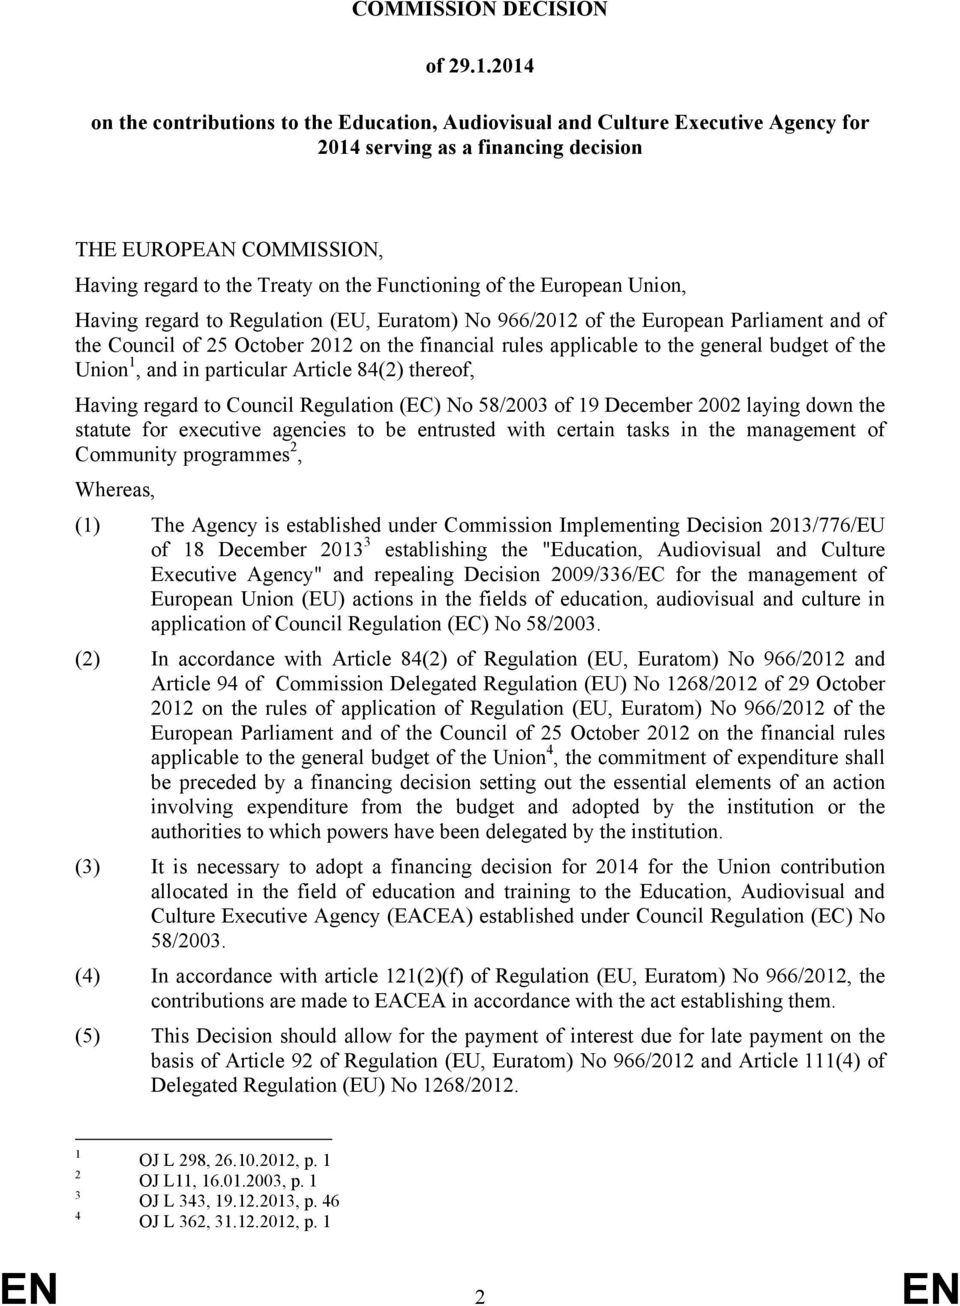 of the European Union, Having regard to Regulation (EU, Euratom) No 966/2012 of the European Parliament and of the Council of 25 October 2012 on the financial rules applicable to the general budget